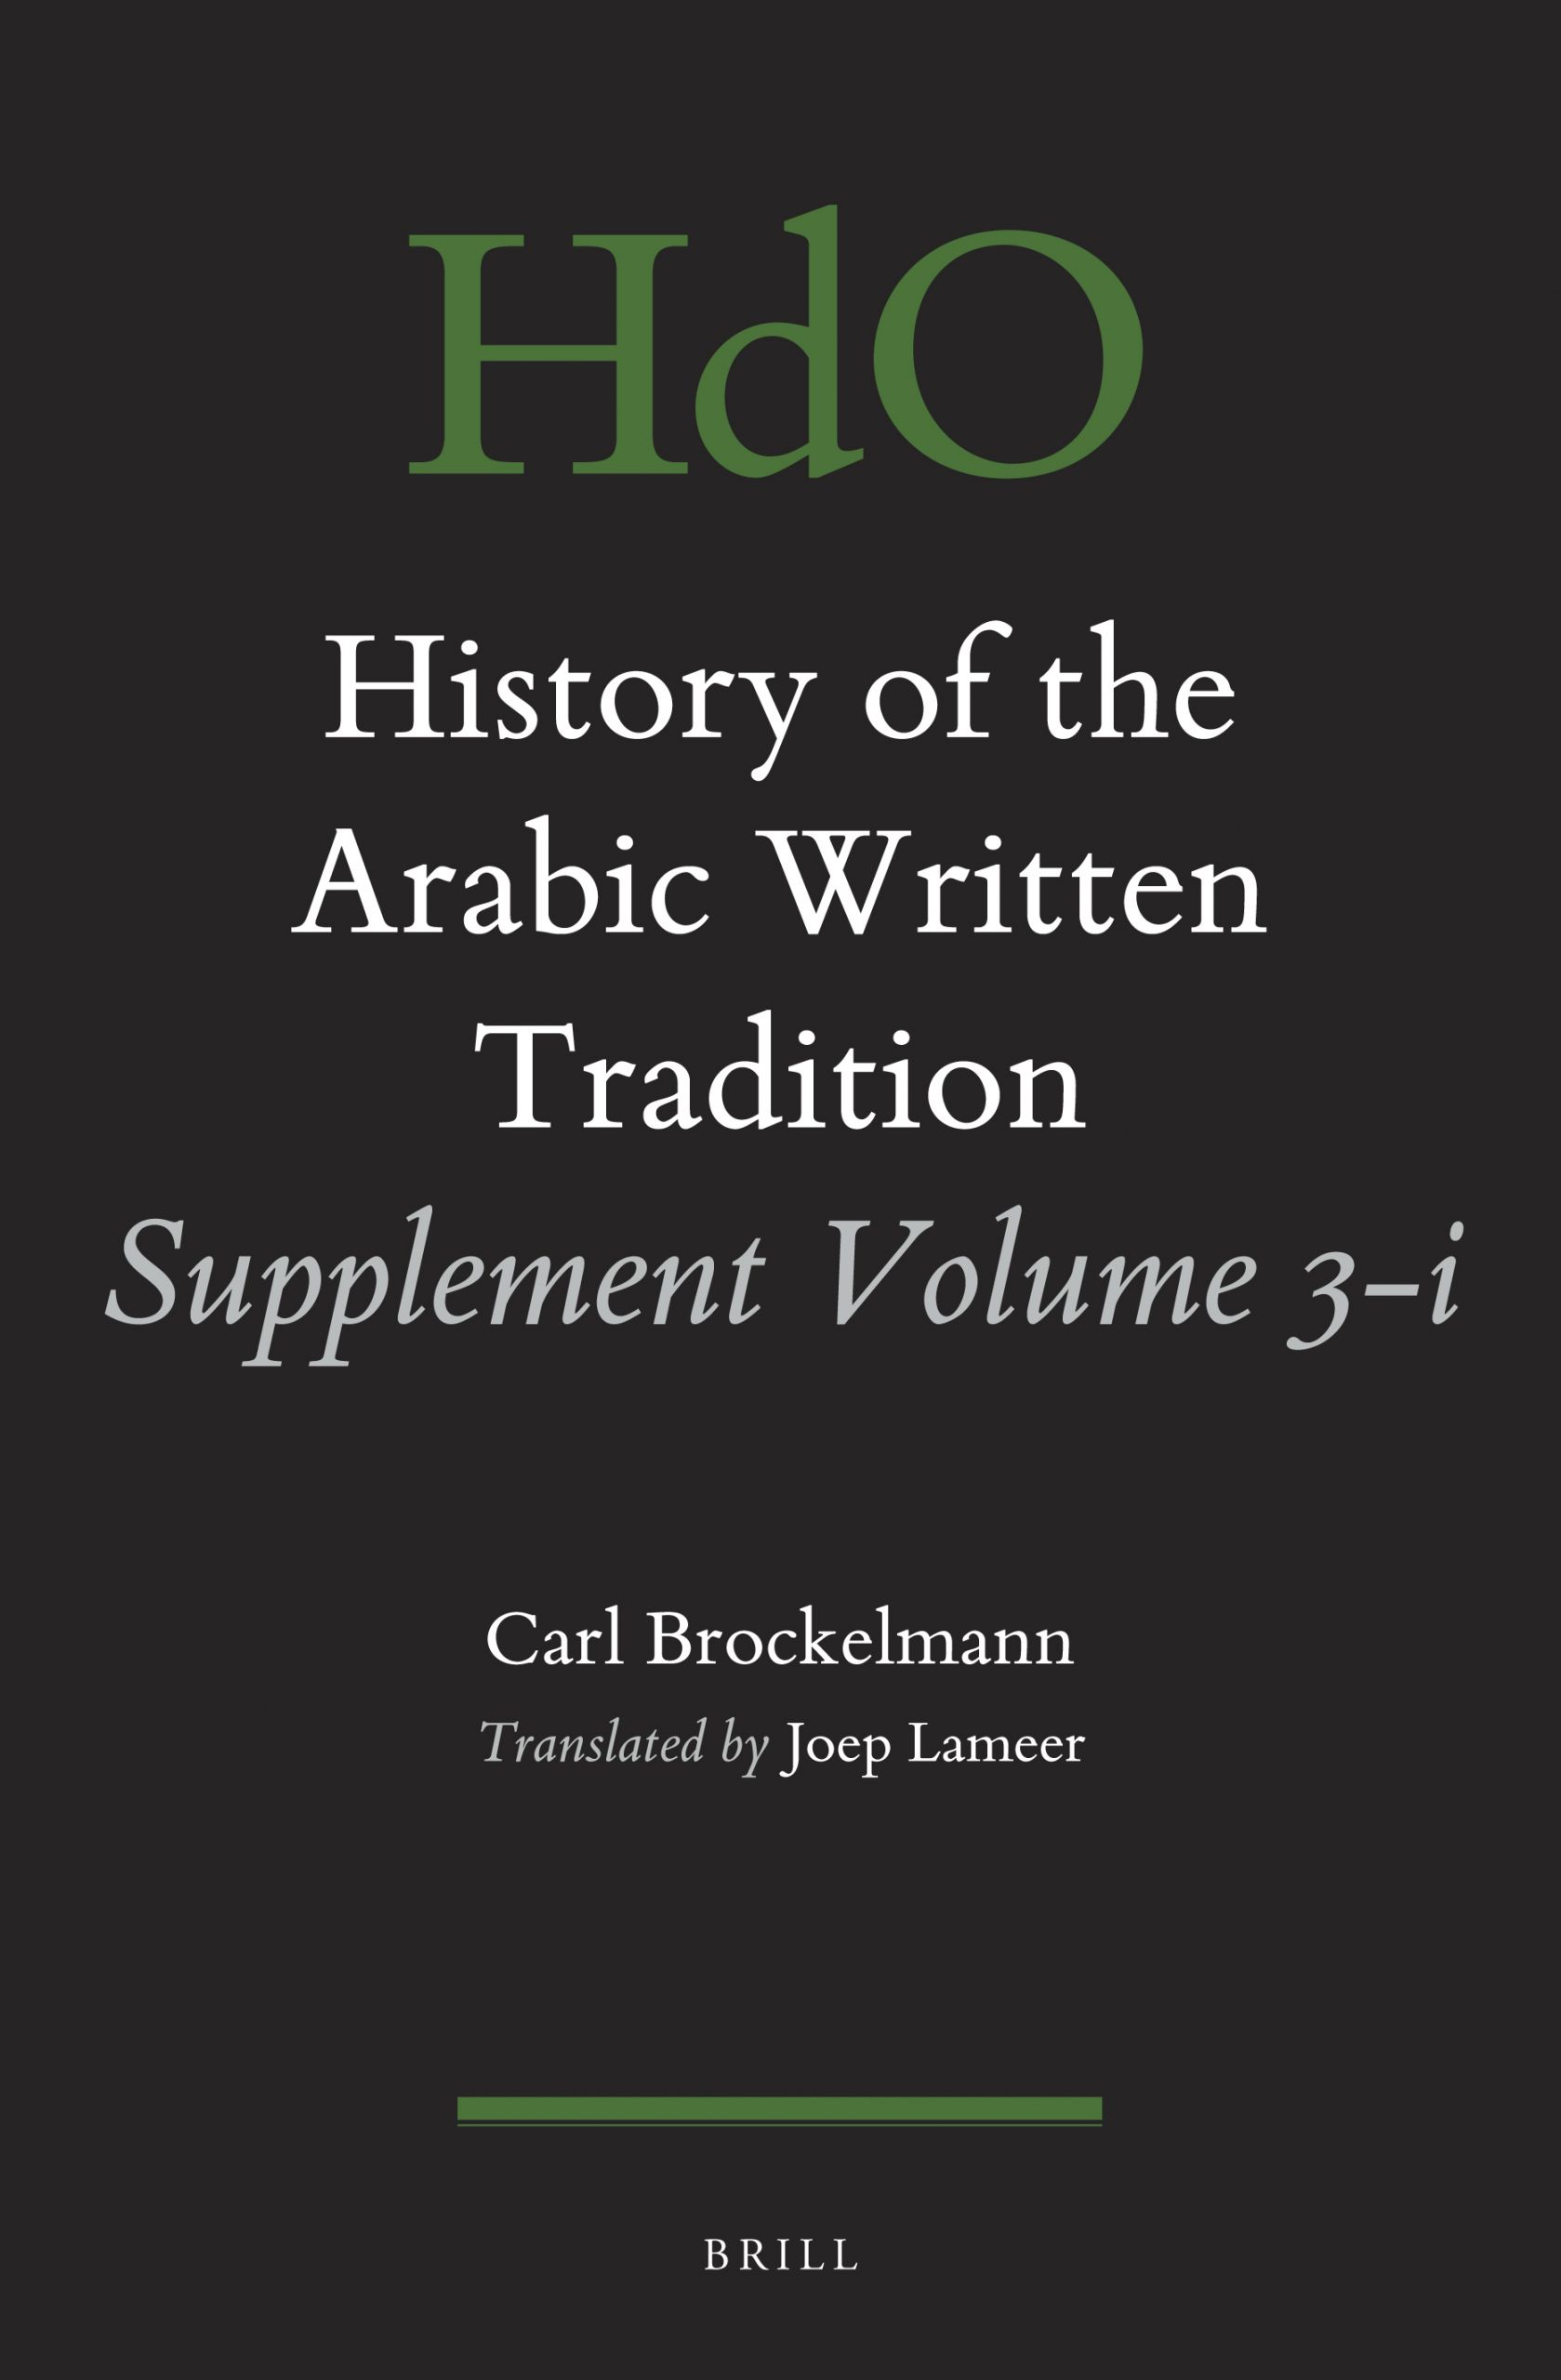 Eclerc Voyage Génial Abbreviations In History Of the Arabic Written Tradition Of 39 Génial Eclerc Voyage